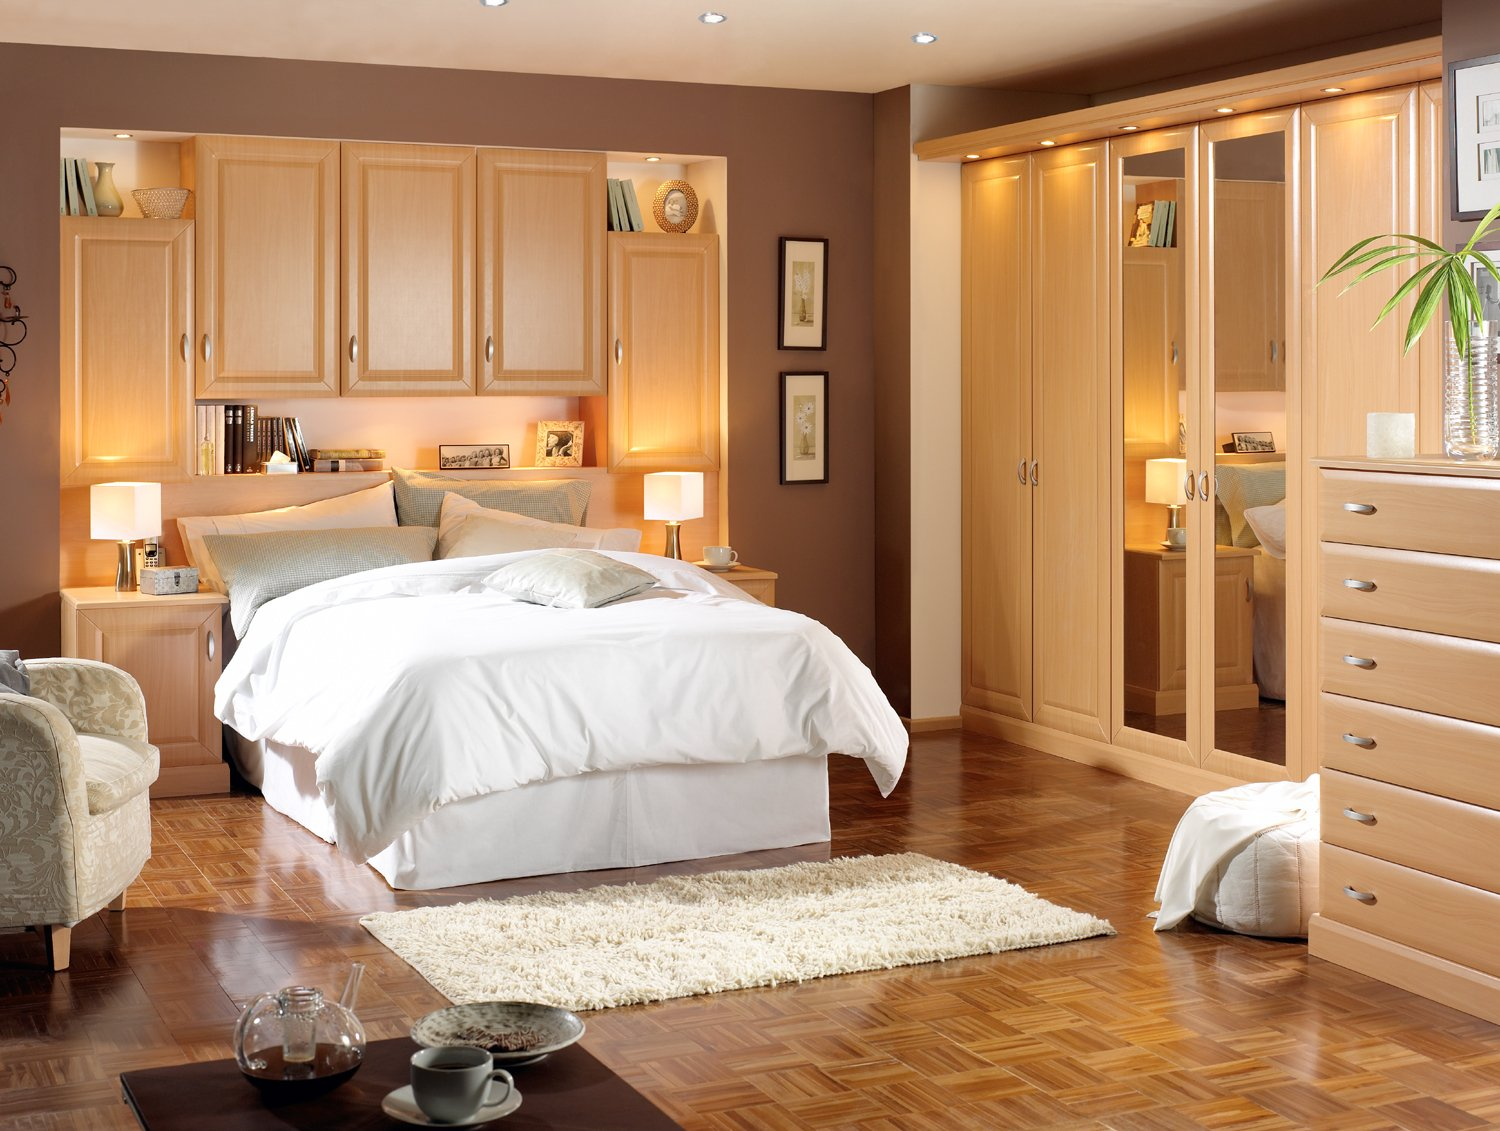 Bedrooms cupboard designs pictures an interior design for Interior decoration bedroom photos